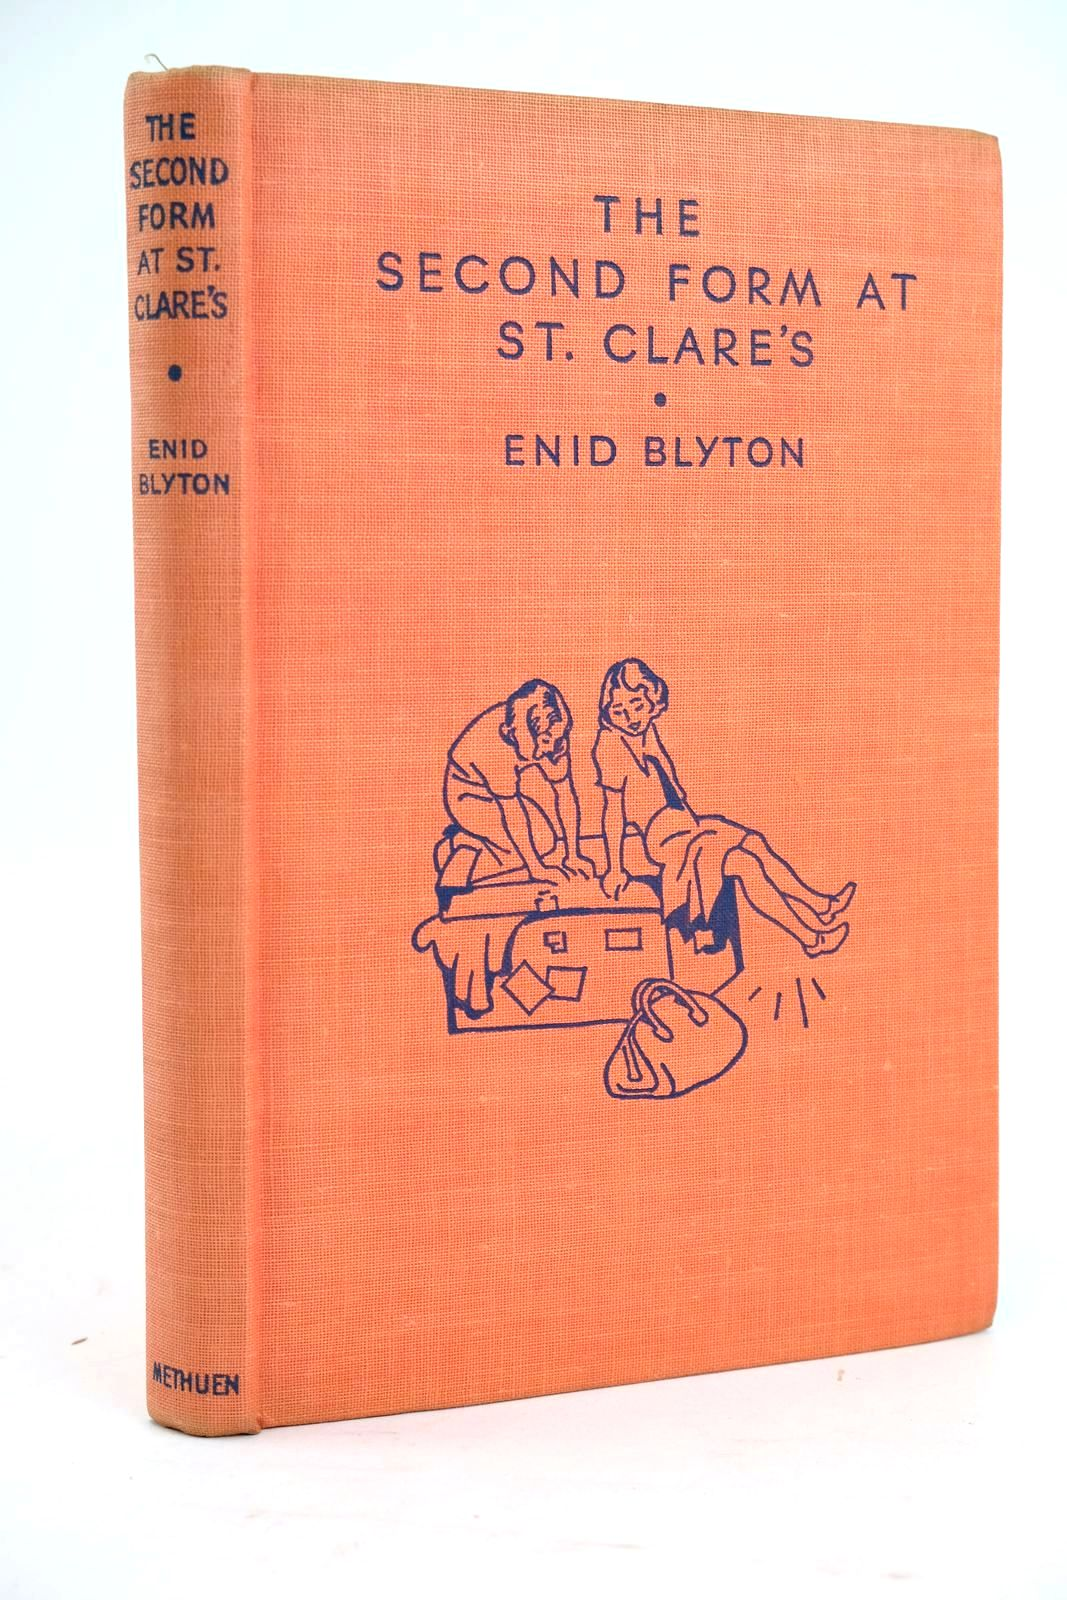 Photo of THE SECOND FORM AT ST. CLARE'S written by Blyton, Enid illustrated by Cable, W. Lindsay published by Methuen & Co. Ltd. (STOCK CODE: 1319454)  for sale by Stella & Rose's Books